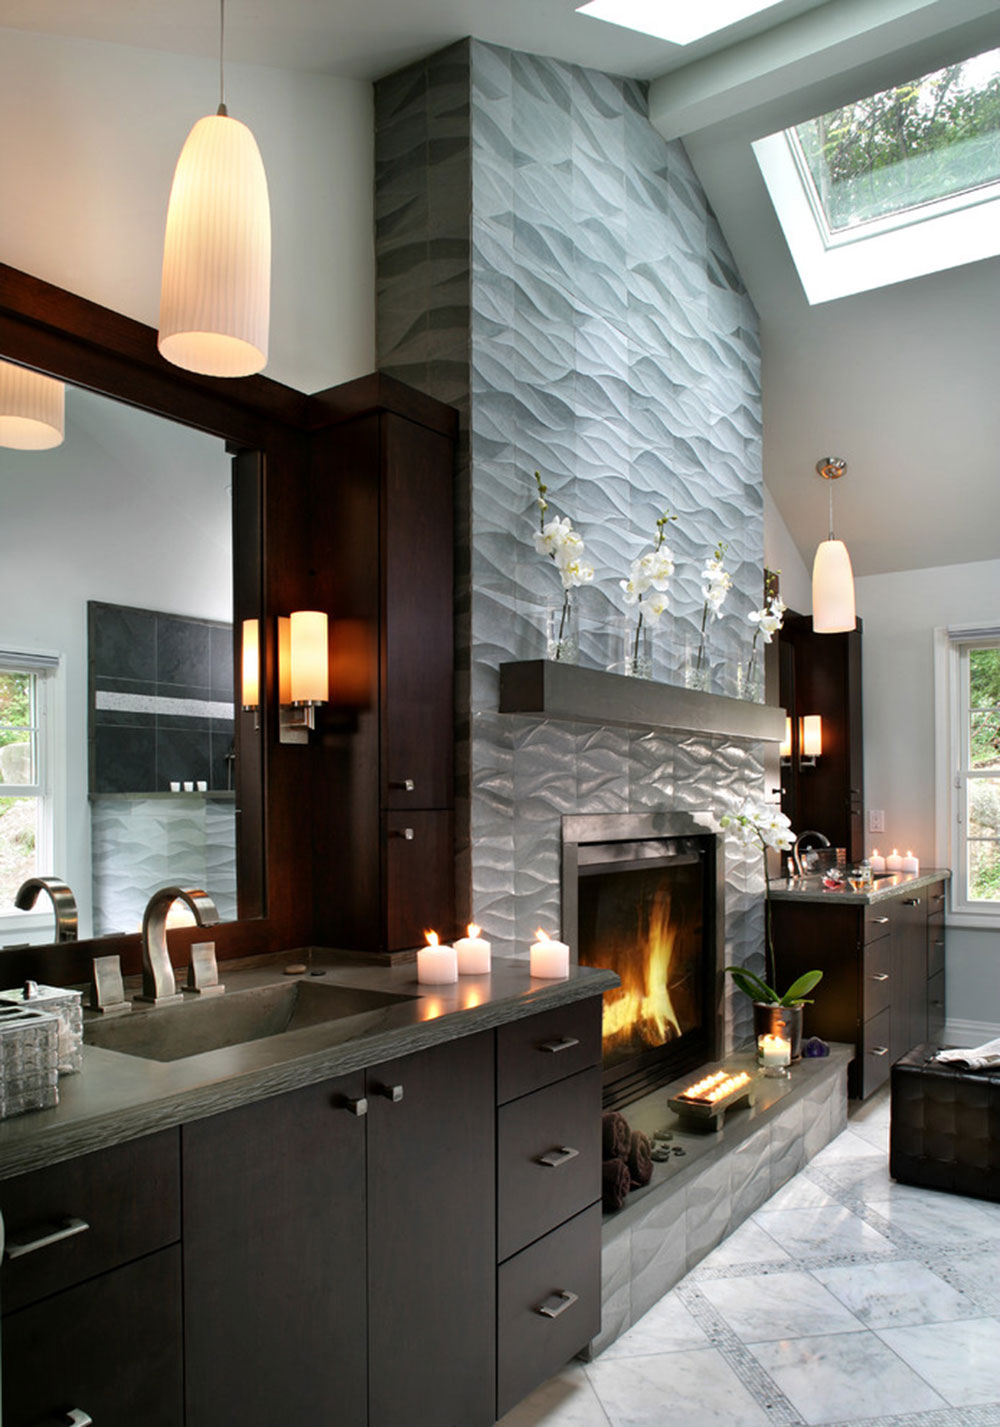 Contemporary Fireplace Surround For Warm Homes14 Modern Tile Ideas